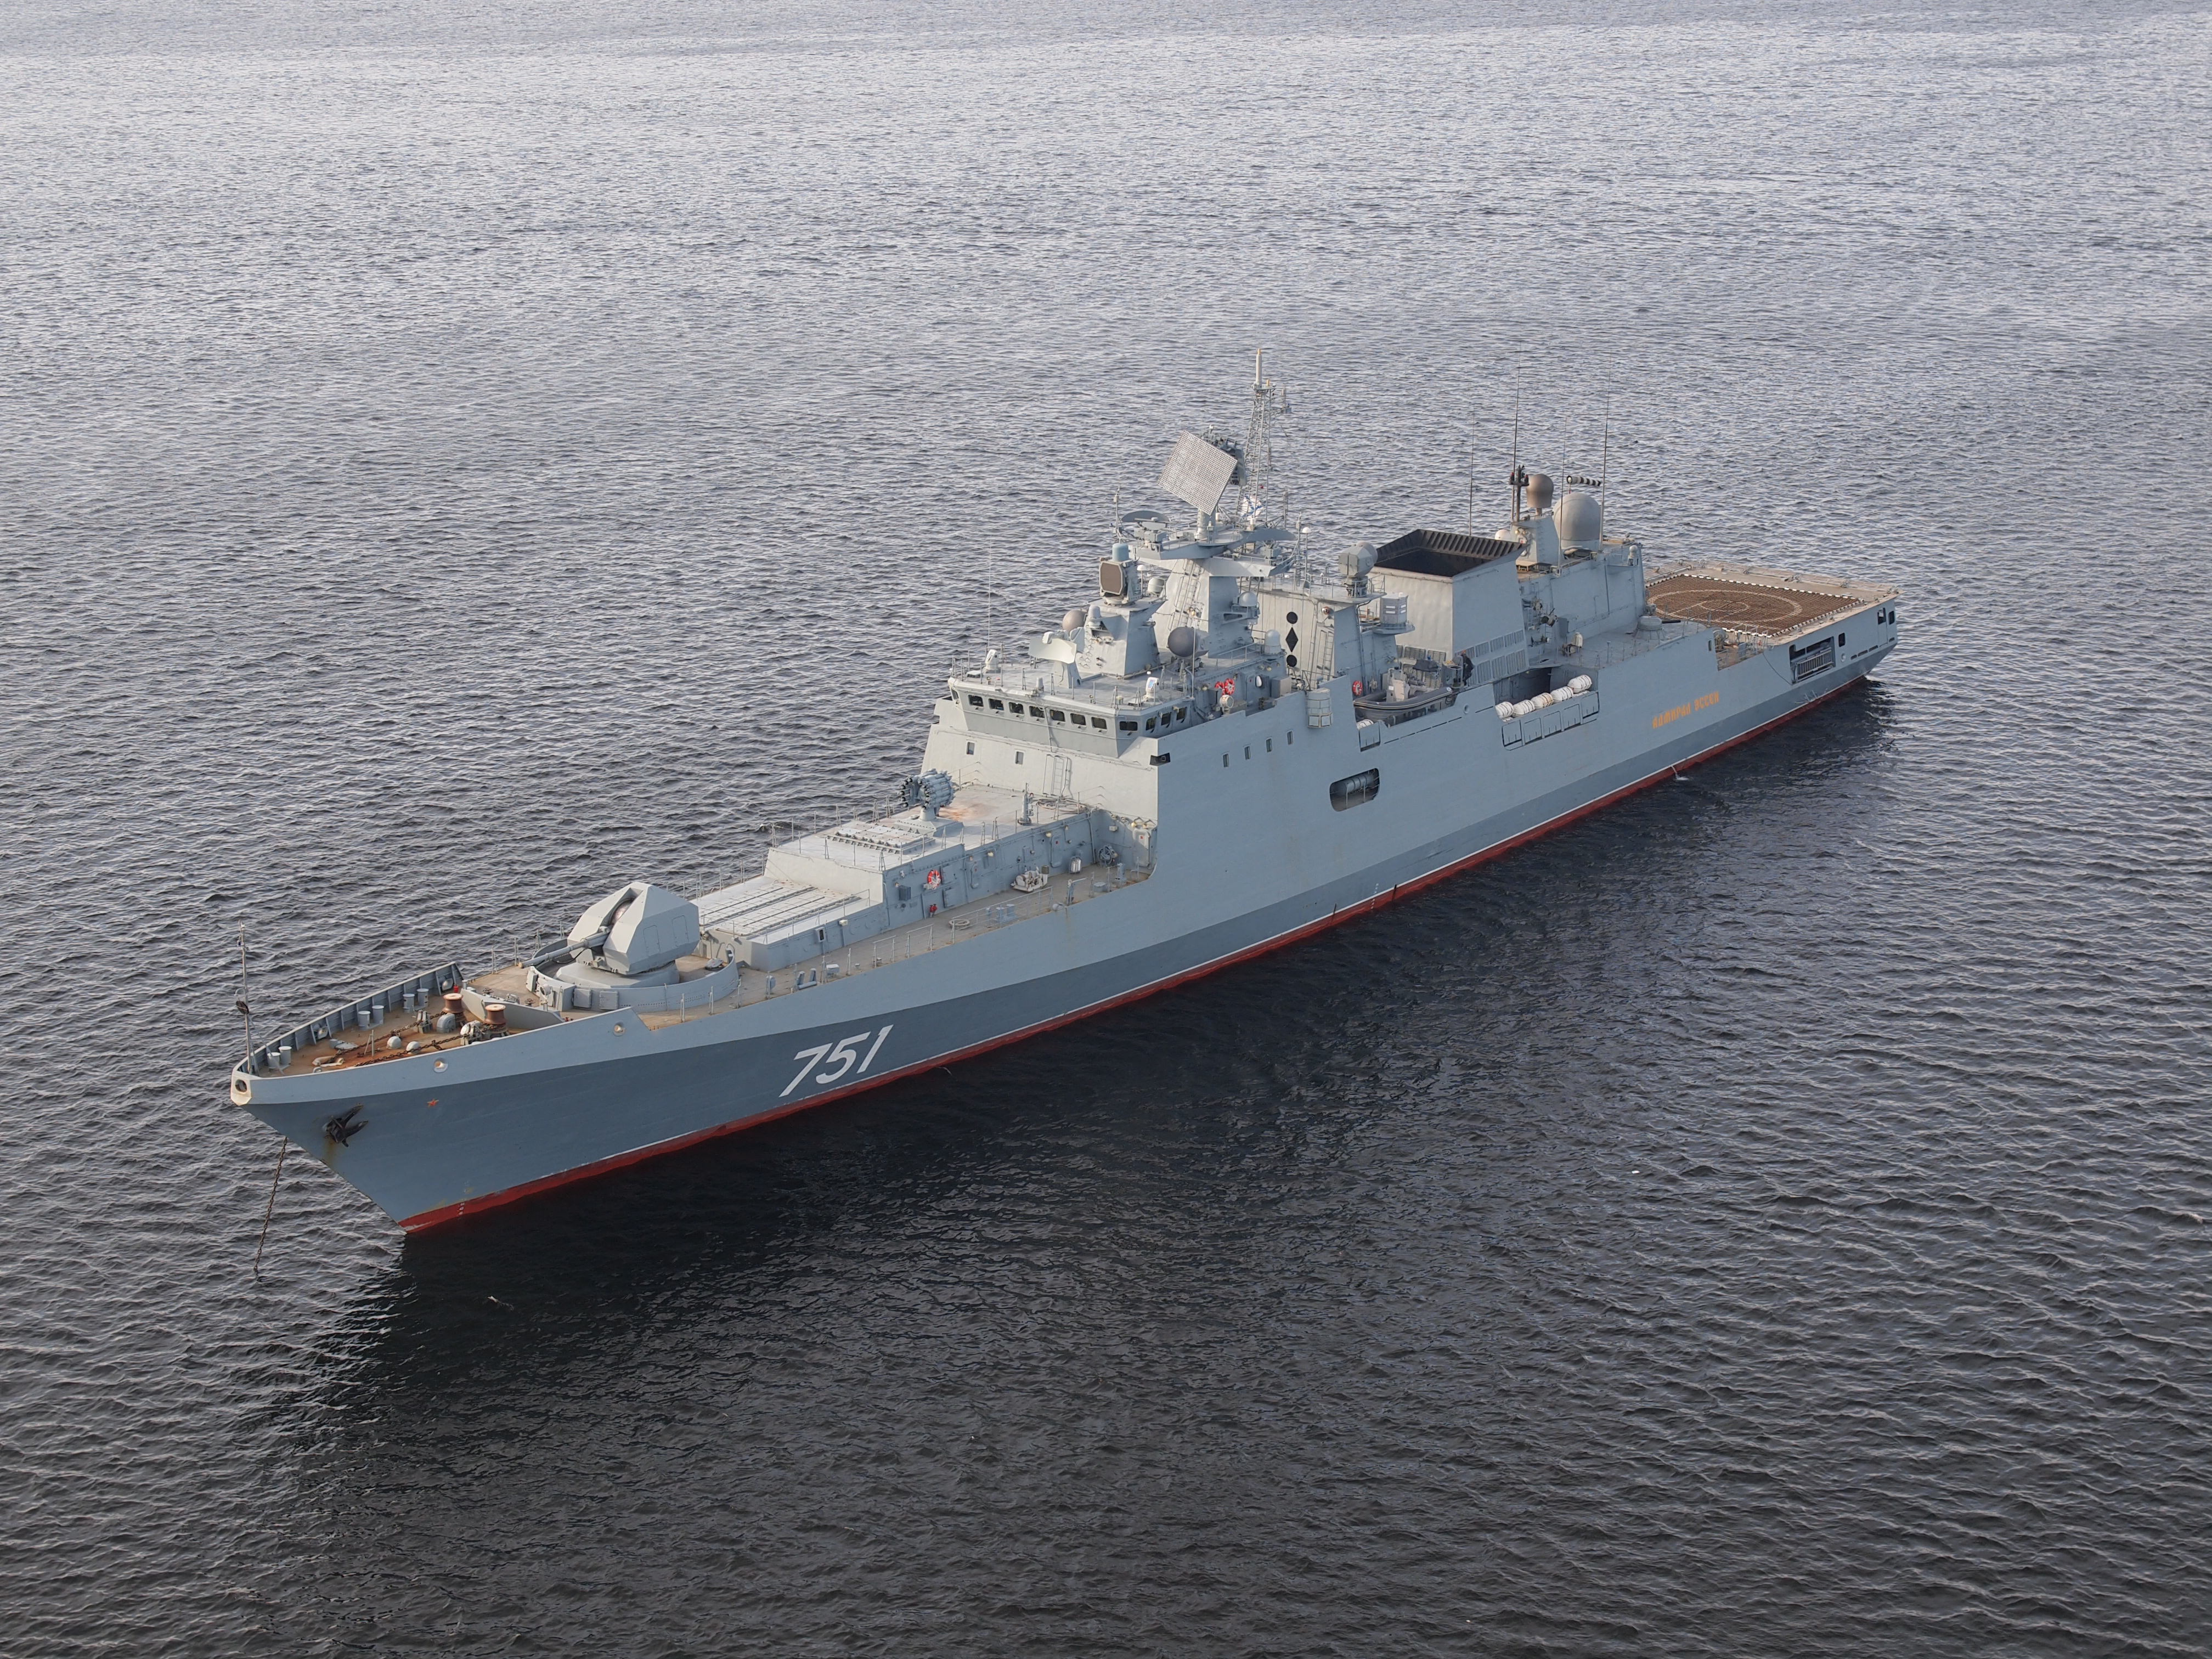 A Russian Navy Grigorovich-class frigate underway.